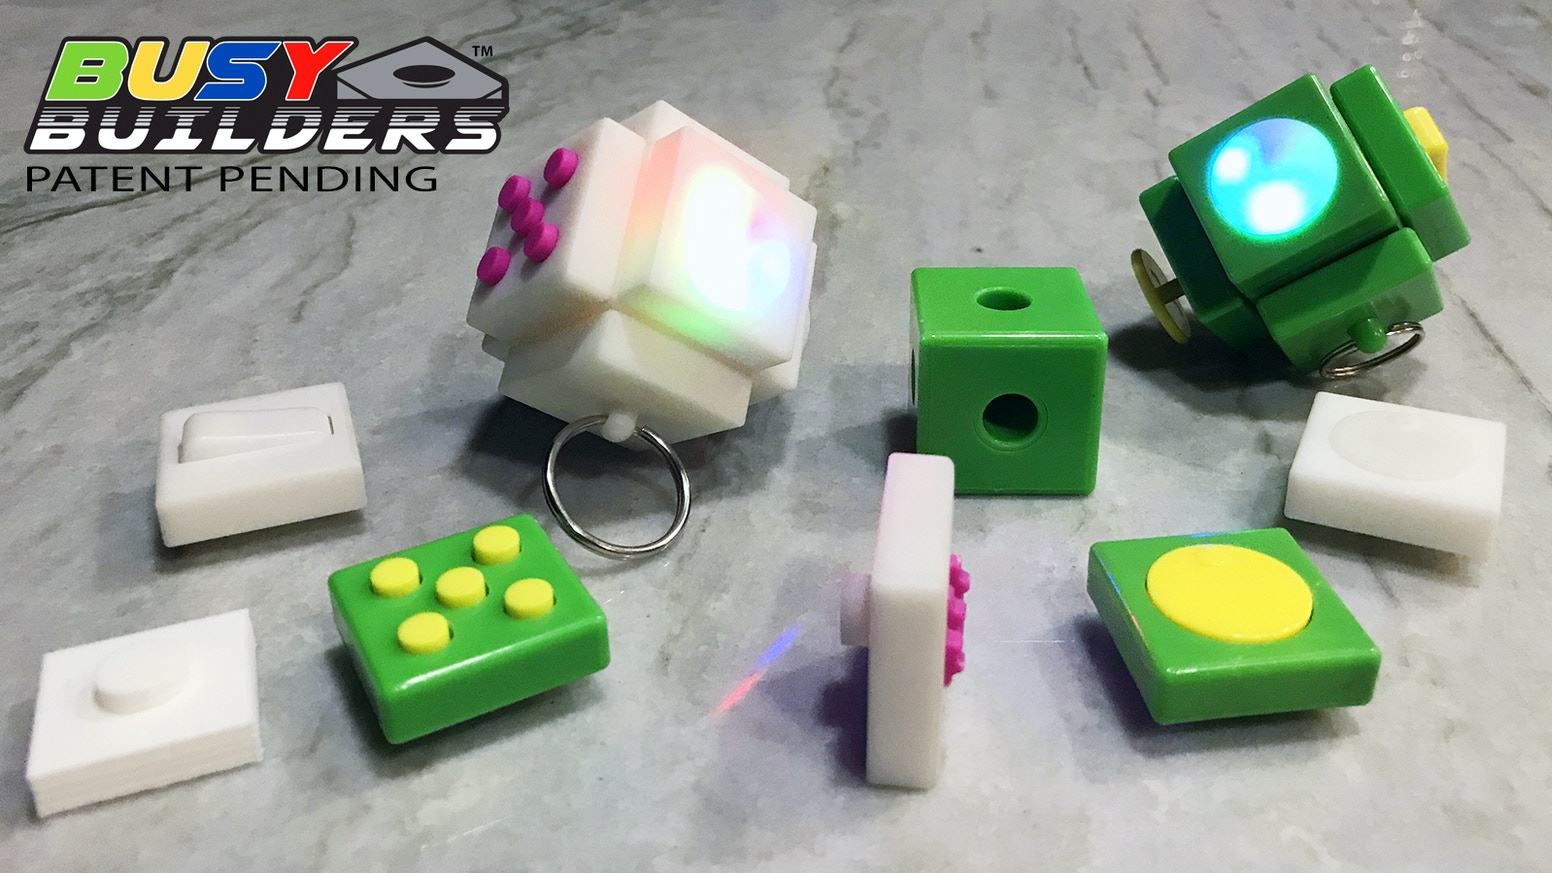 Interlocking fidget pieces, packaged in blind bags, that allow you to collect and build a custom fidget toy or spinner.